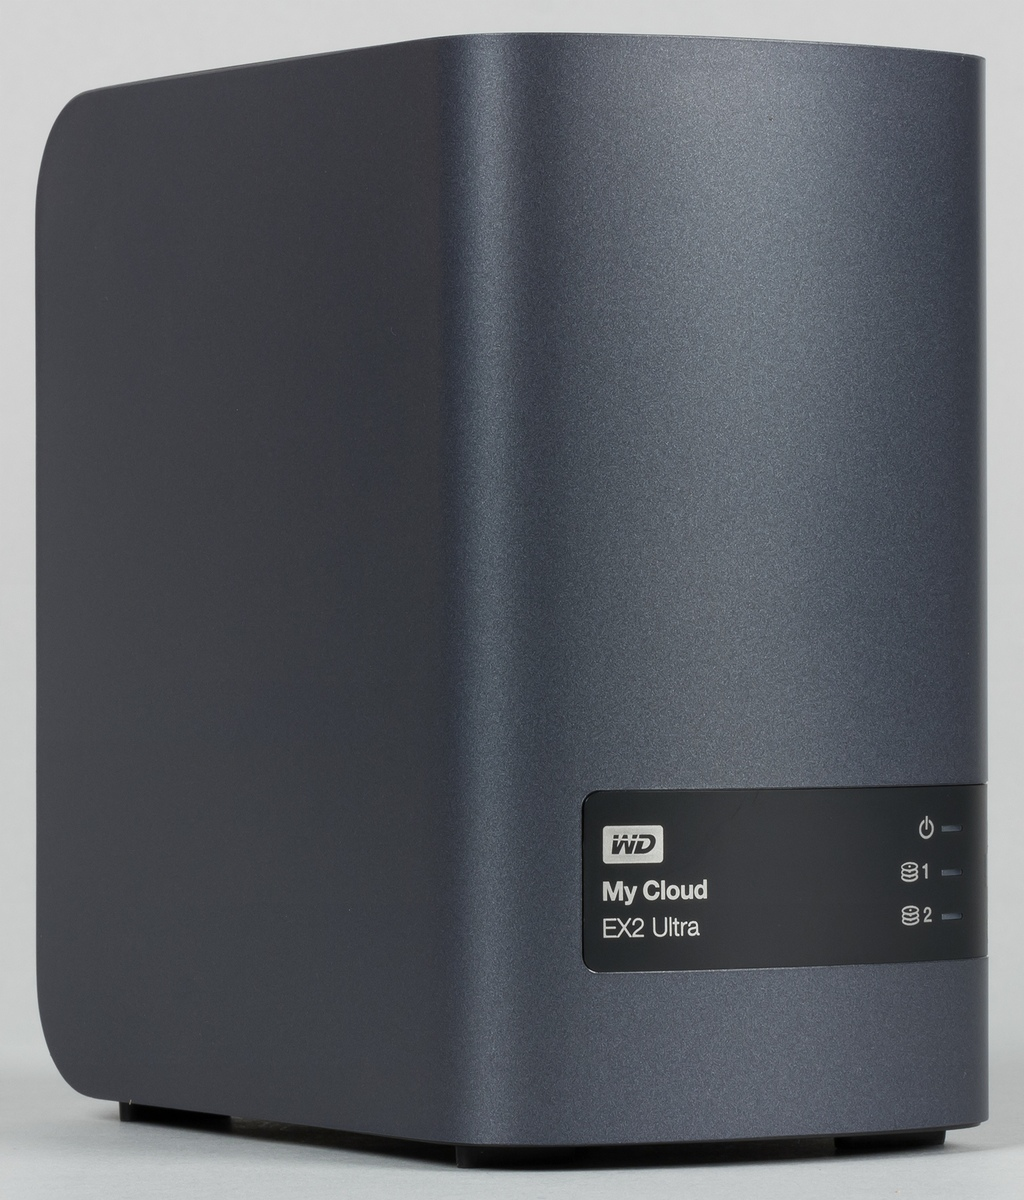 WD MY CLOUD EX2 ULTRA PERSONAL STORAGE DOWNLOAD DRIVERS